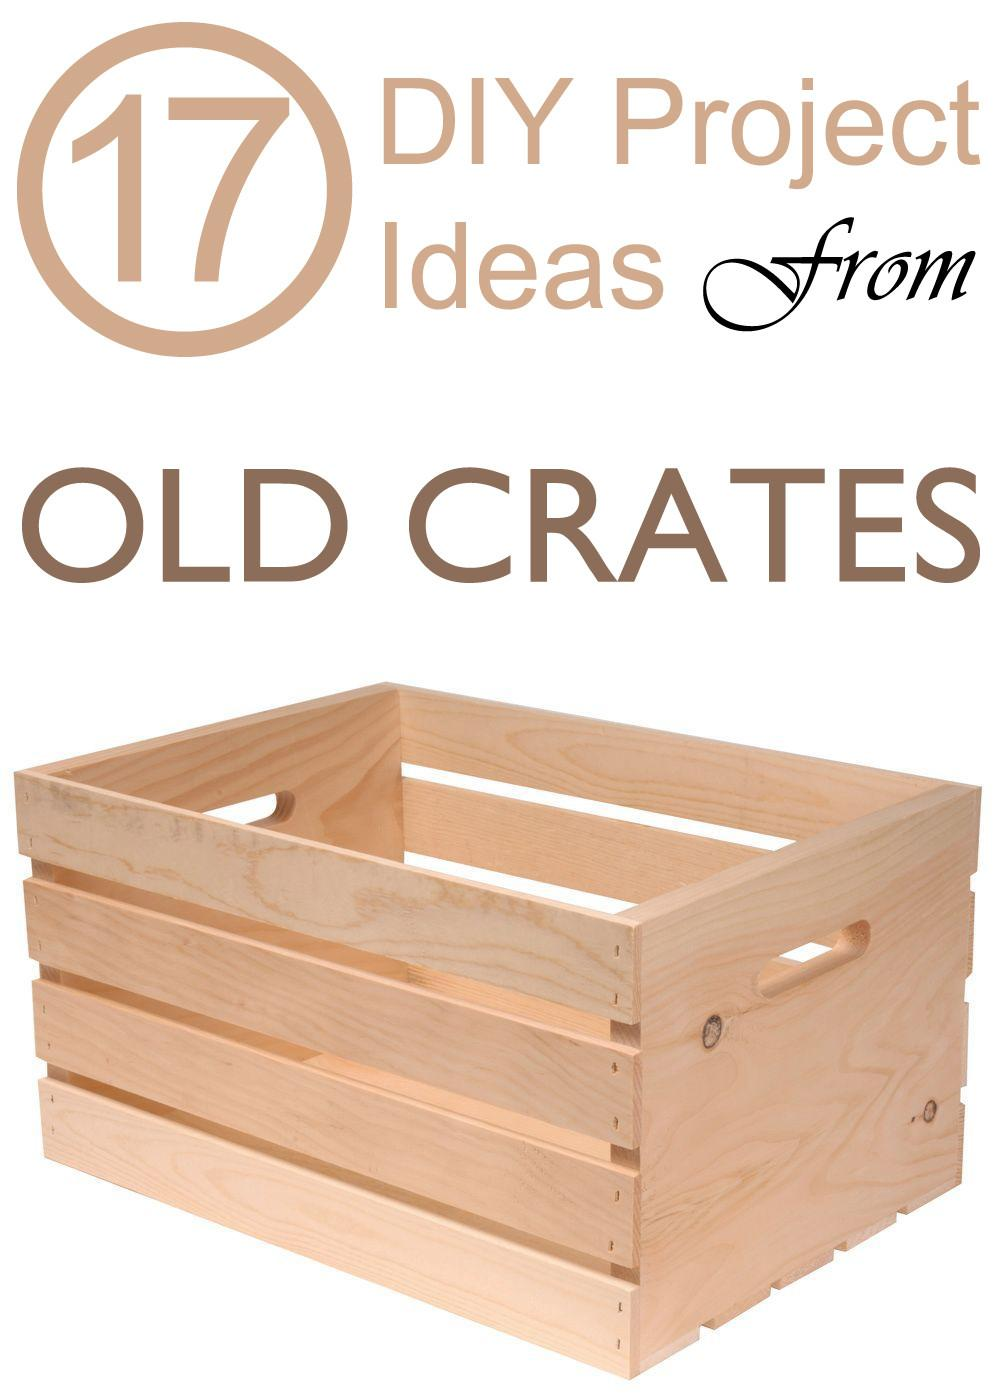 Diy Project Ideas Old Crates